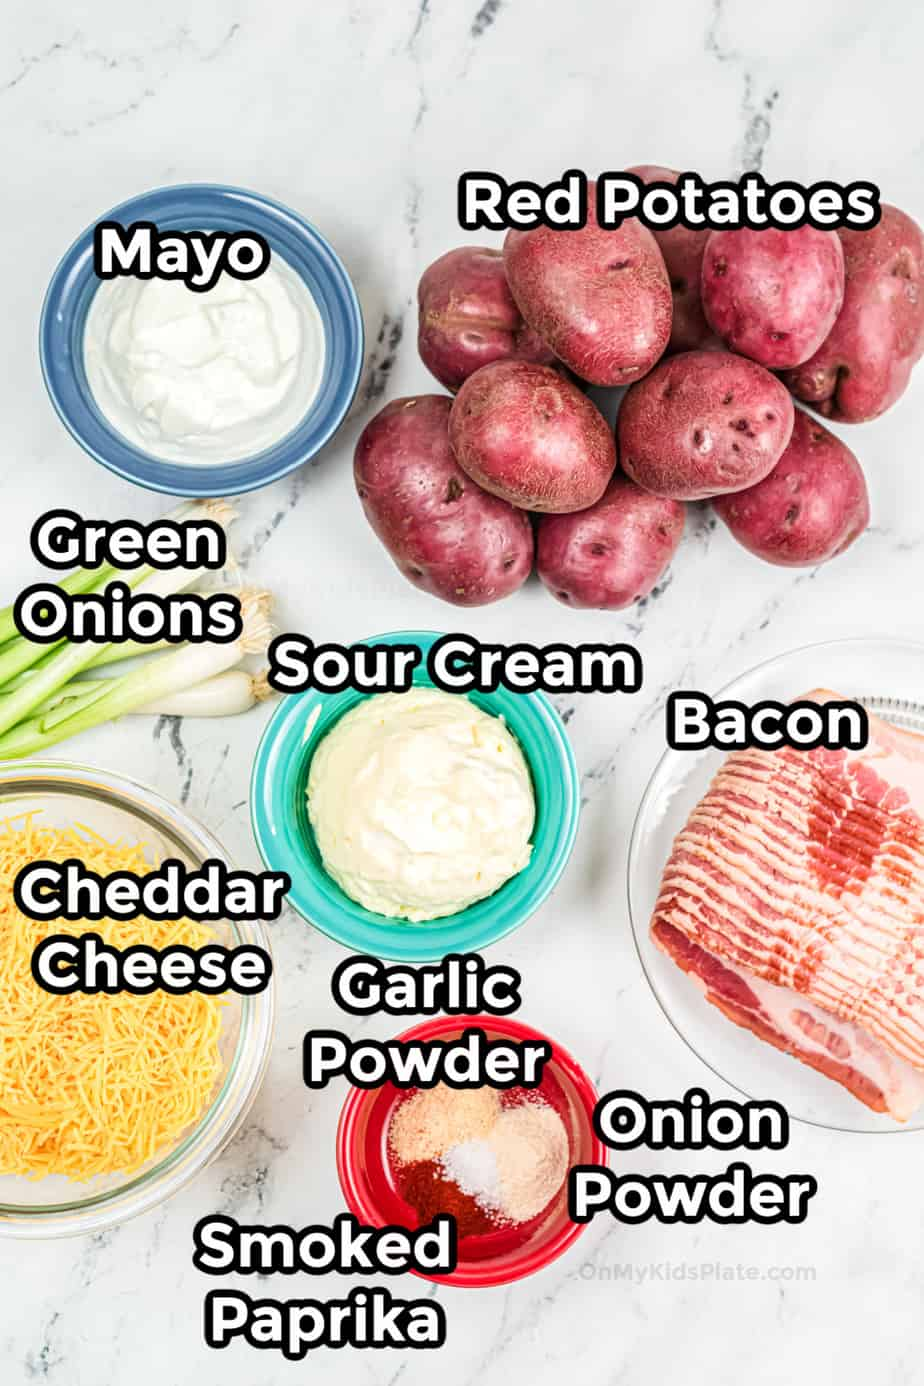 Ingredients for loaded potato salad in bowls.